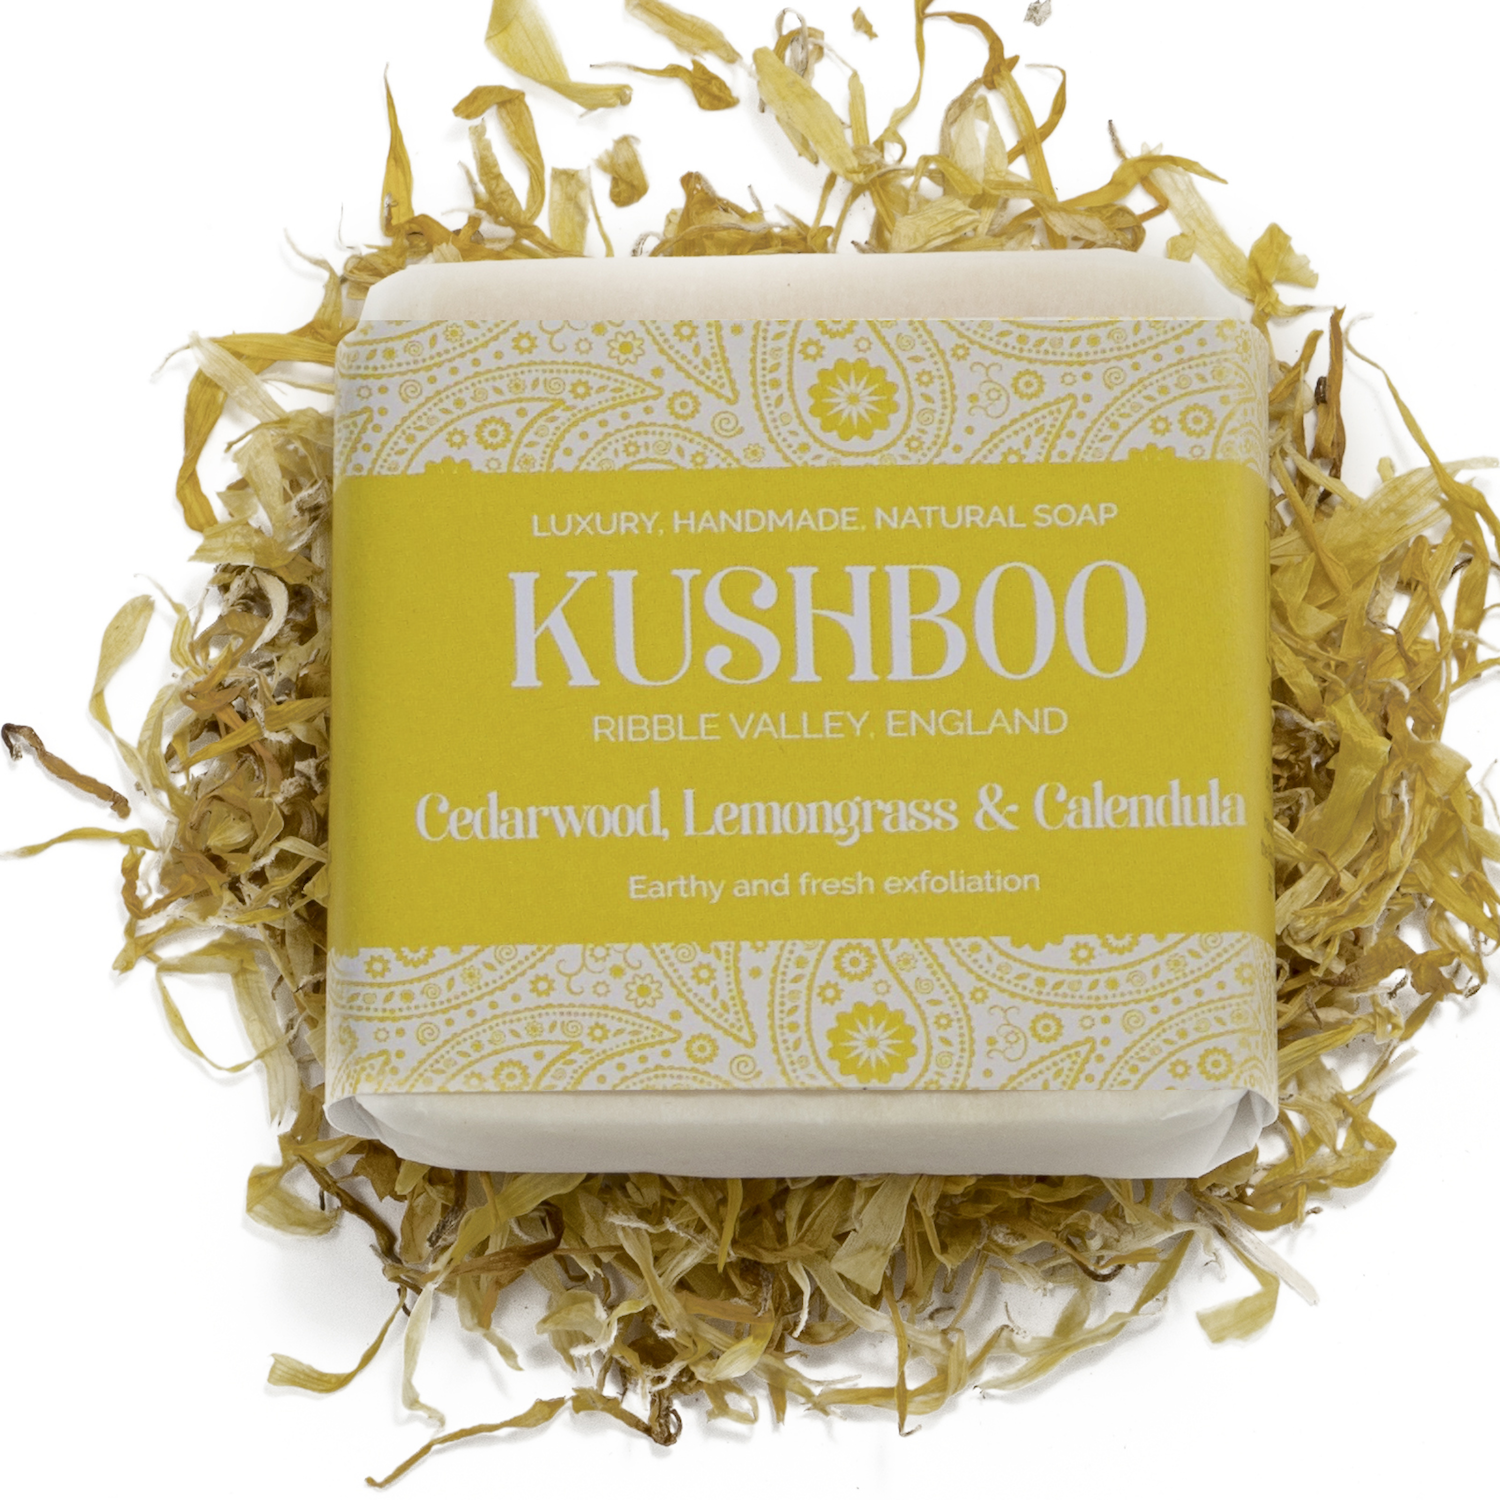 Kushboo Cedarwood, Lemongrass and Calendula Soap